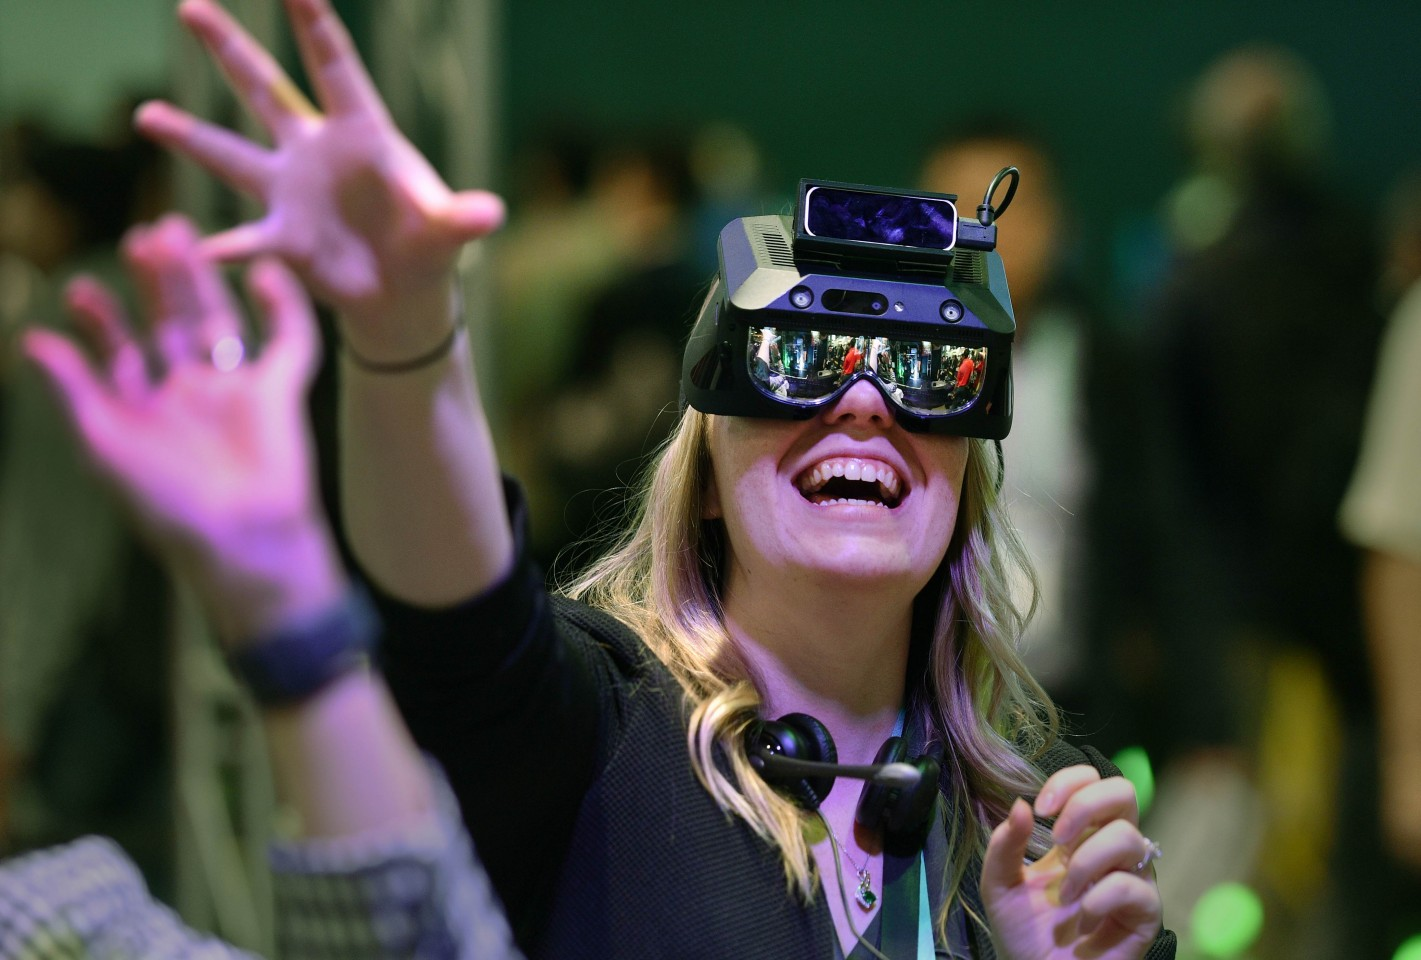 An attendee participates in an augmented reality exercise at the Realmax booth during CES 2020 at the Las Vegas Convention Center on 8 January 2020 in Las Vegas, Nevada. (David Becker/Getty Images/AFP)